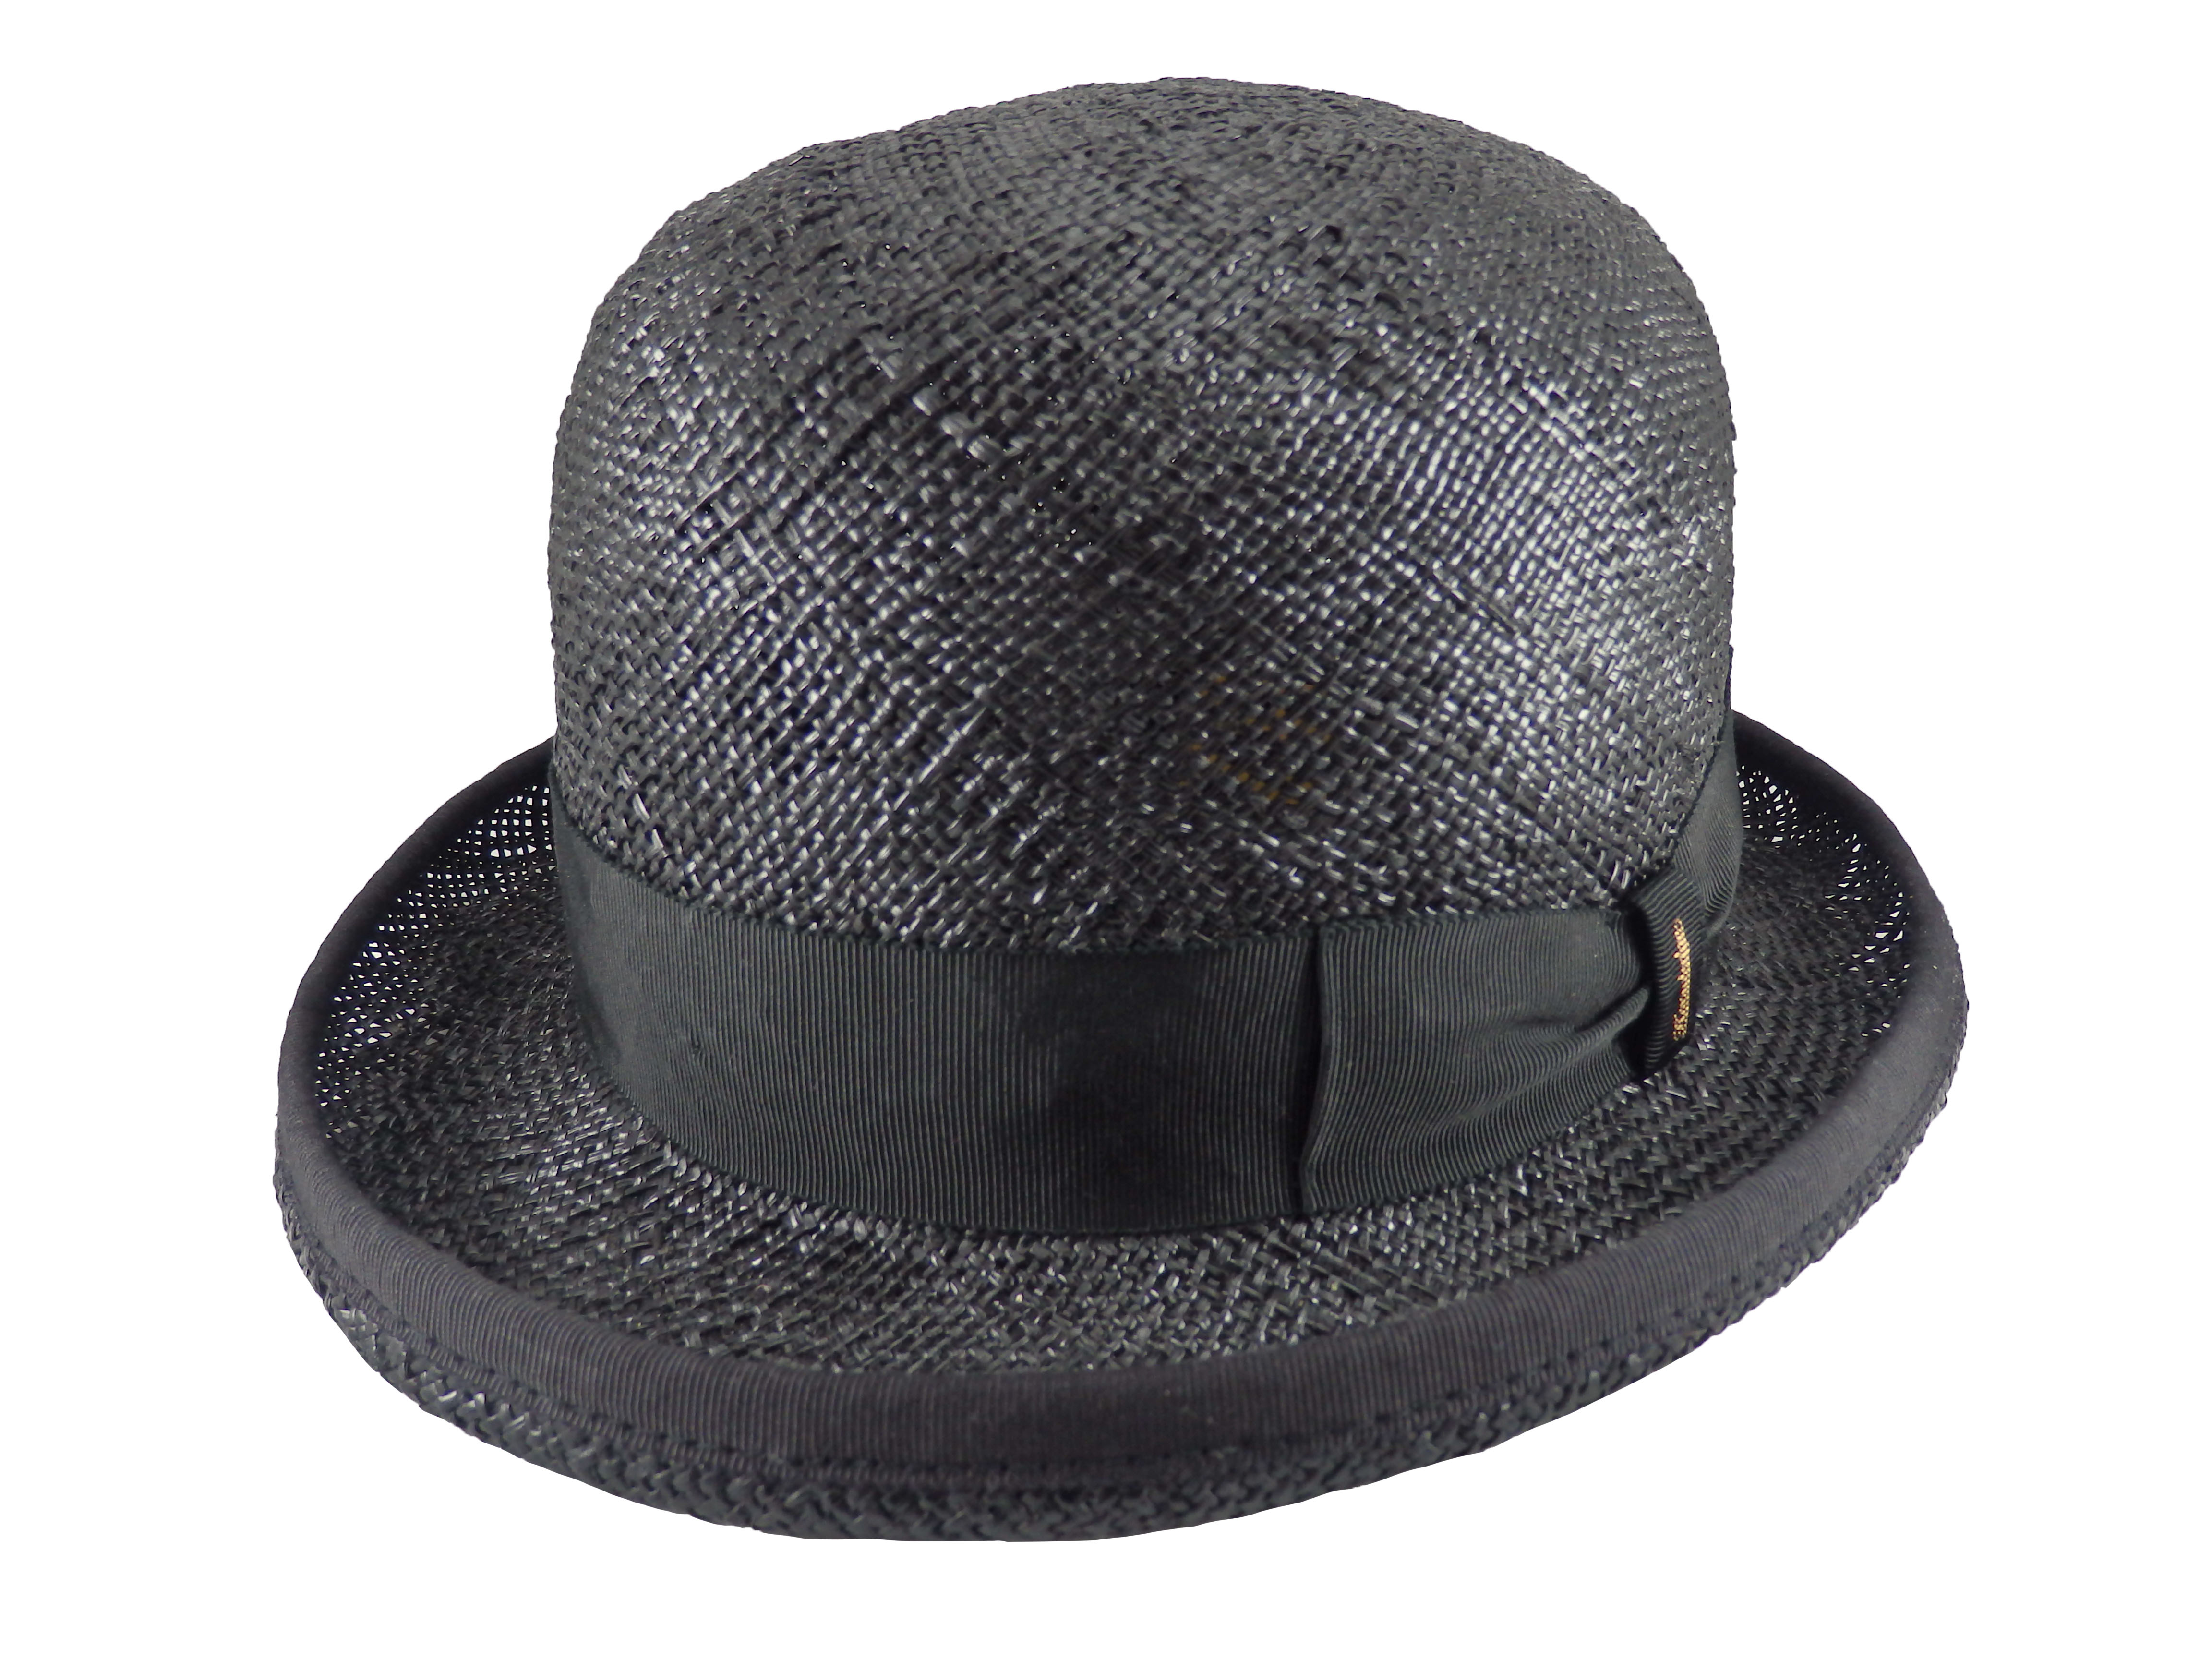 Bao Derby hat / Made in Tokyo 夏用ダービーハット